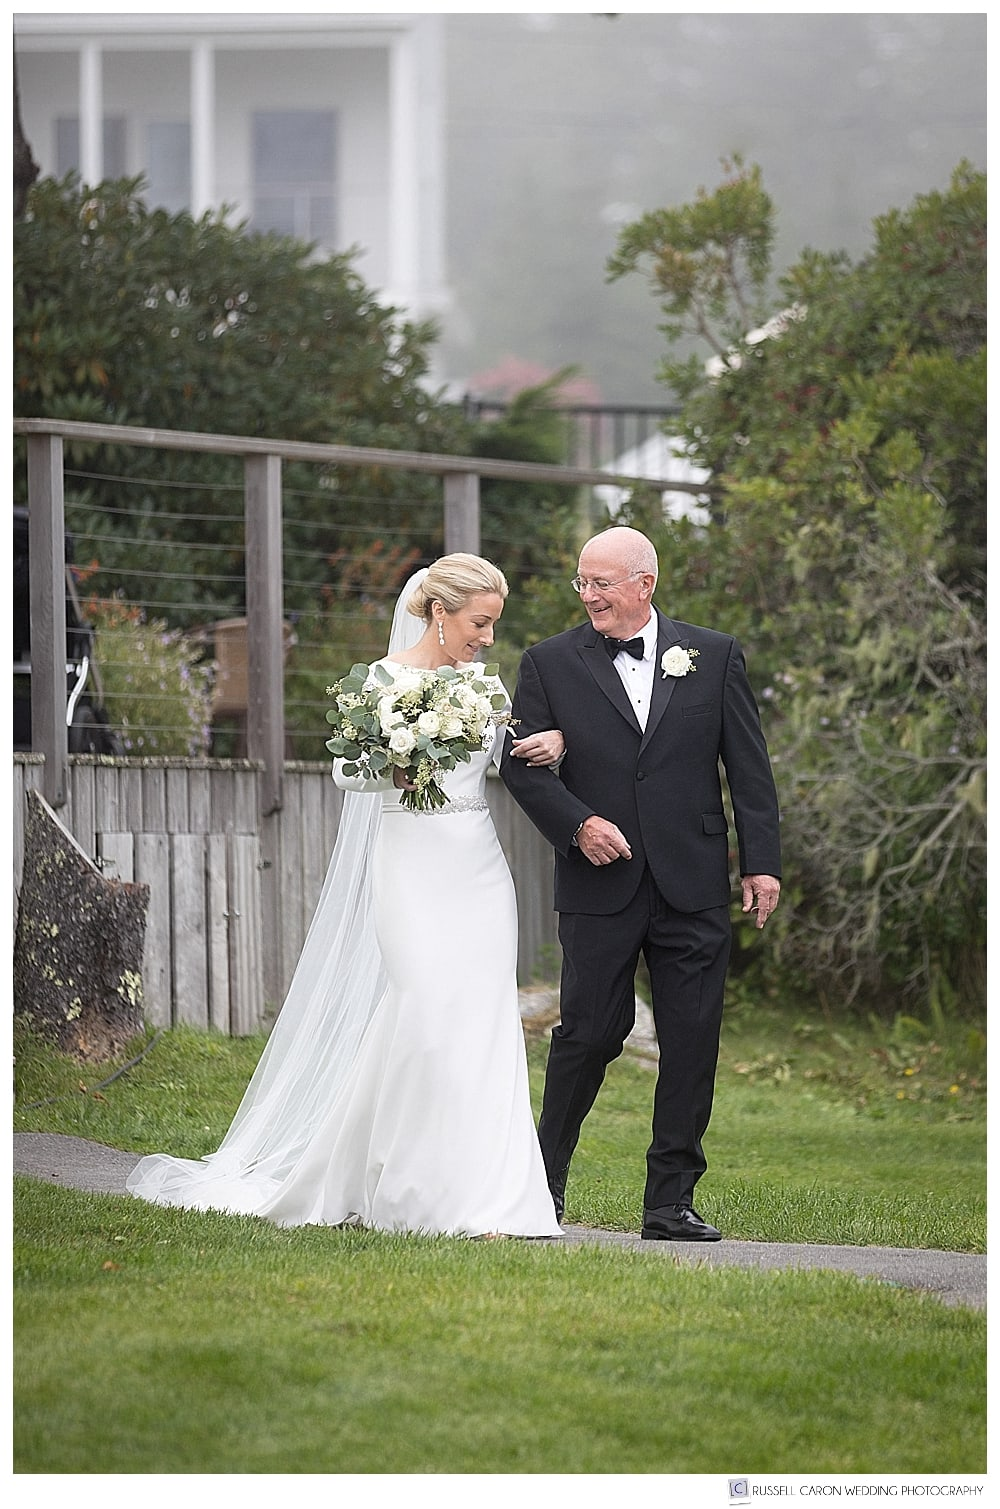 bride and her father getting ready to approach the groom at a classic Newagen Seaside Inn wedding ceremony